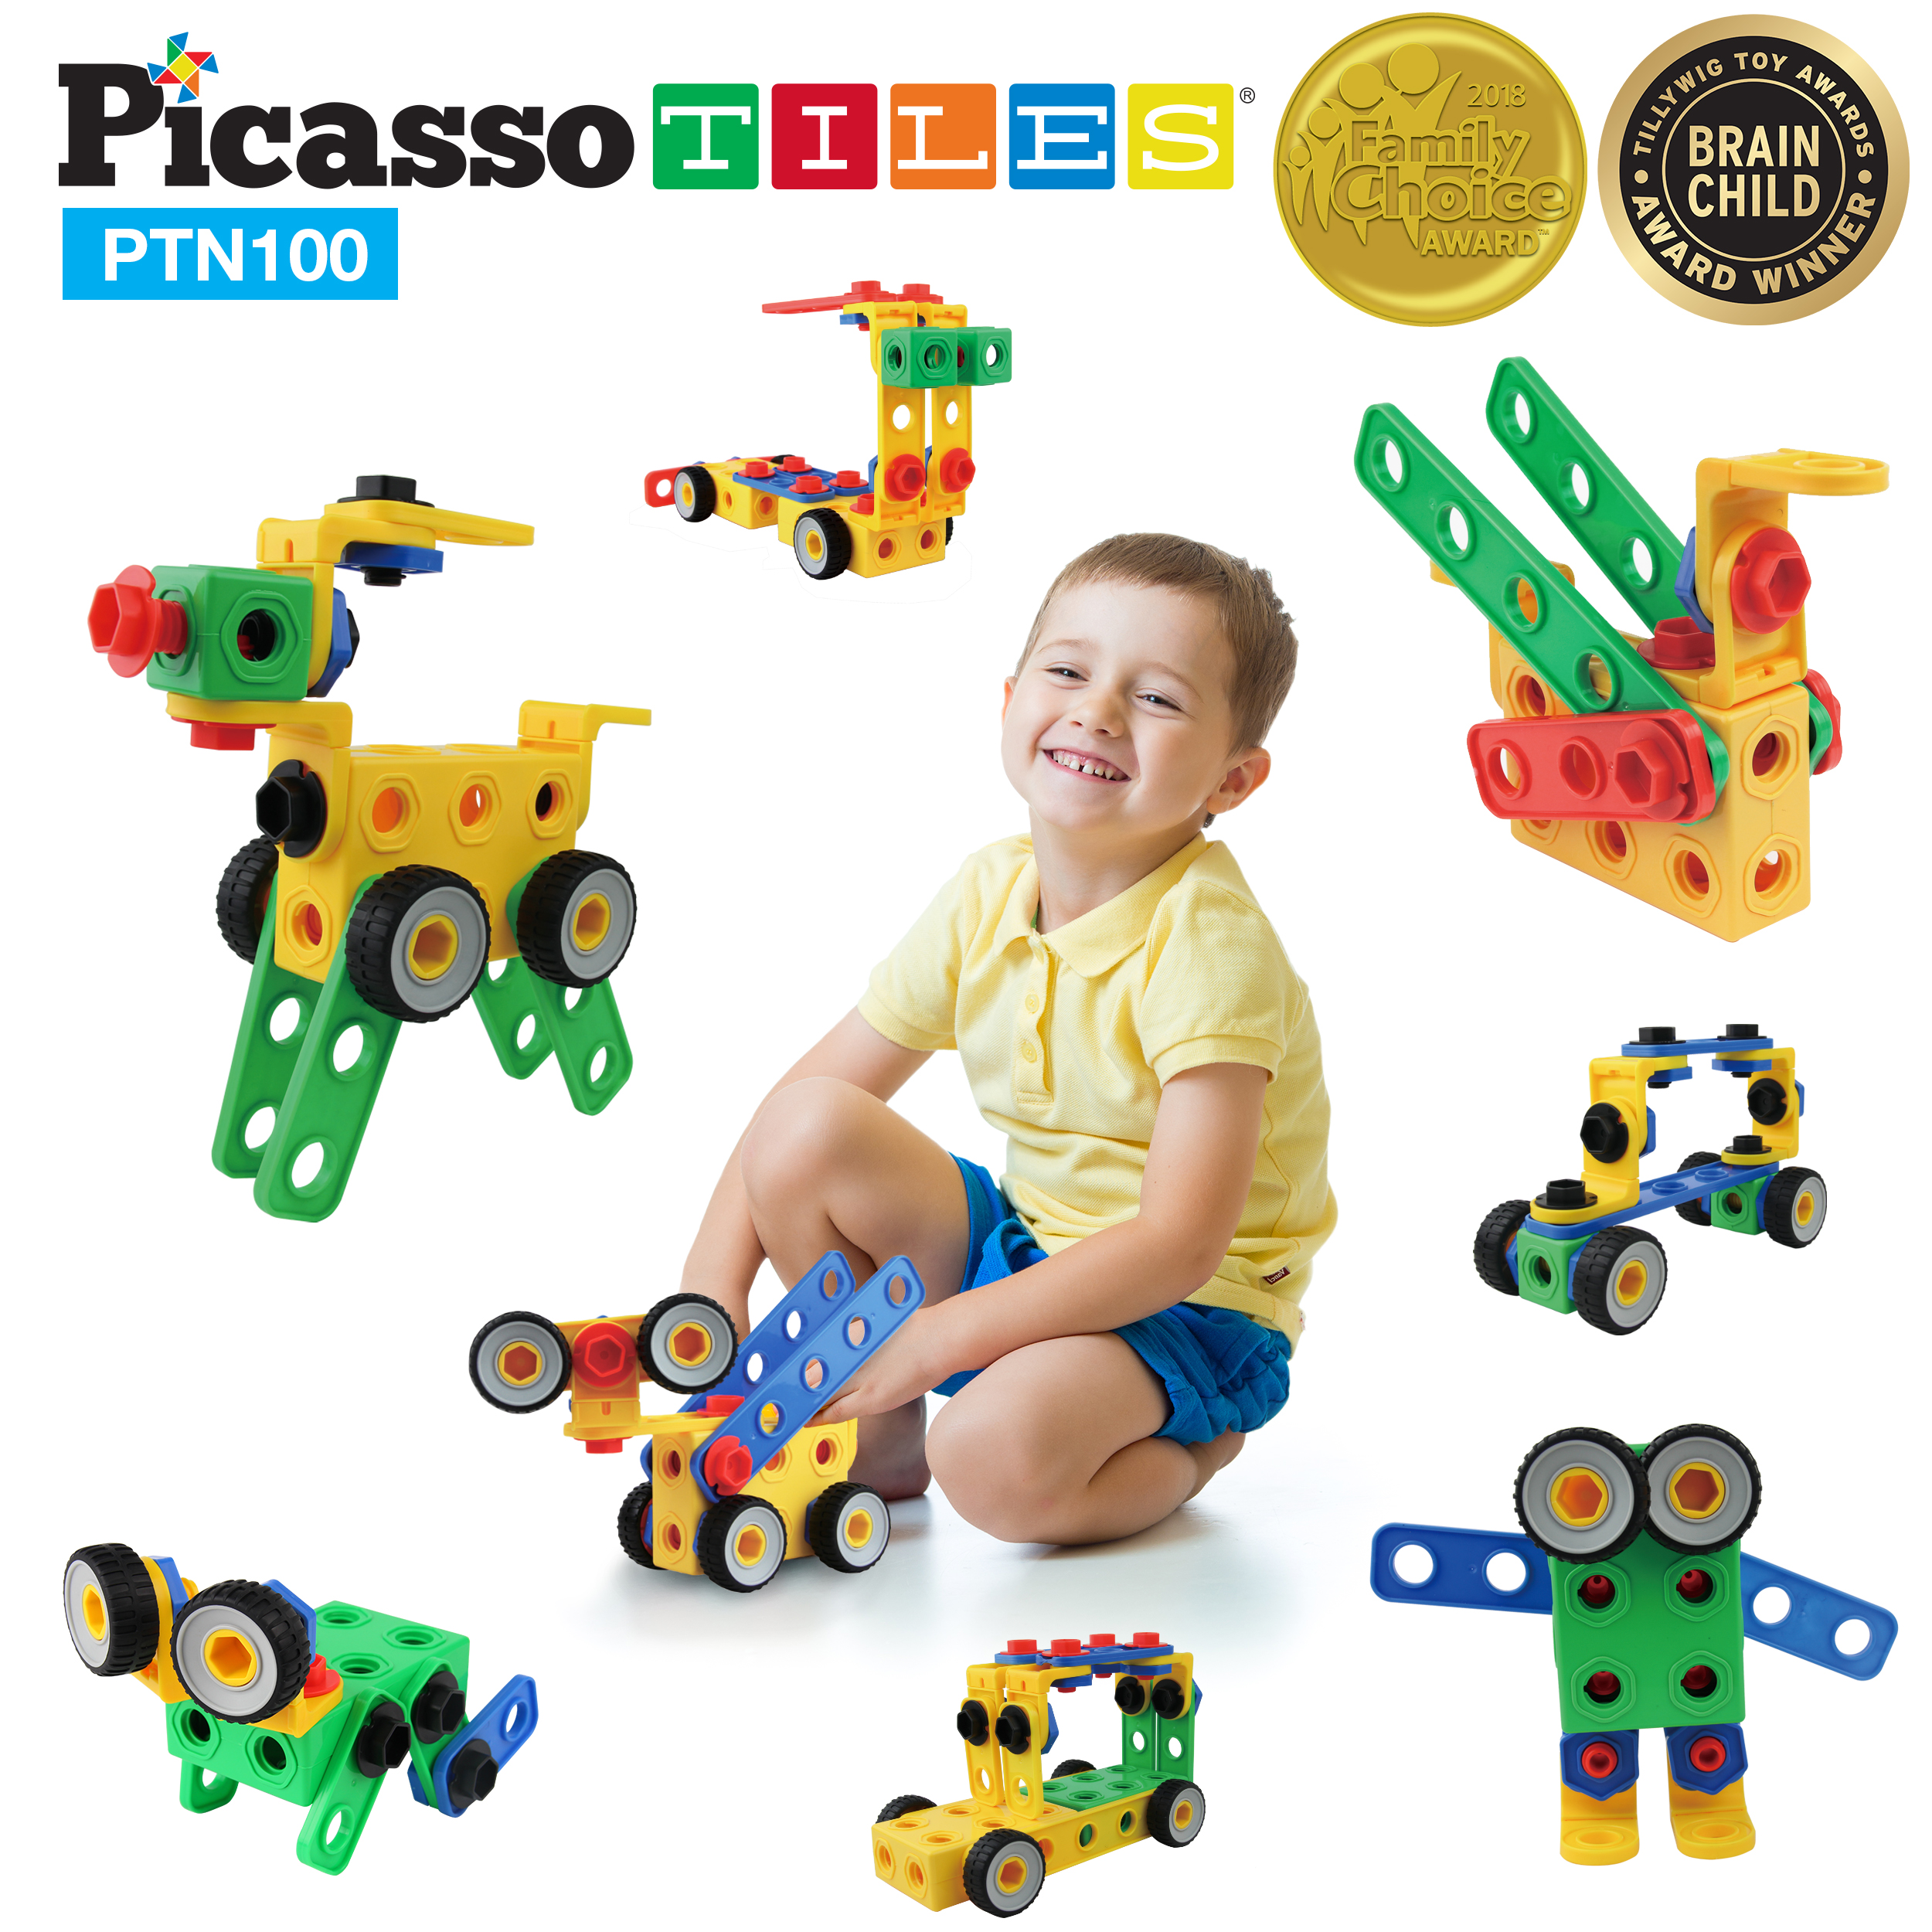 PicassoTiles PTN100 100pc Nuts and Bolts Building Block Engineering STEM Set 3D... by PicassoTiles